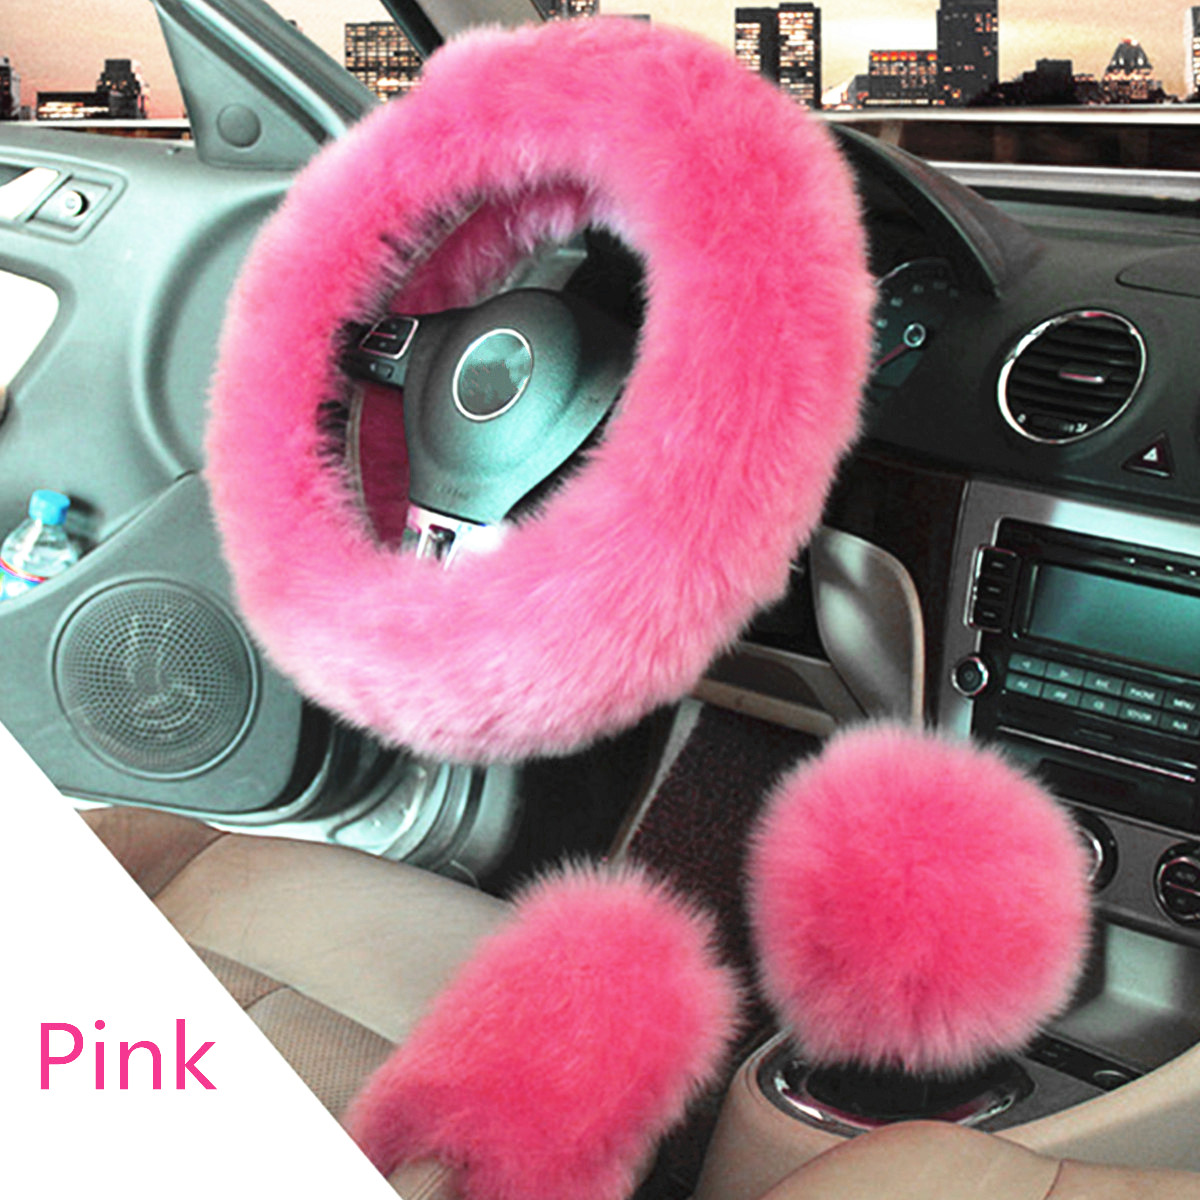 3Pcs Soft Wool Furry Steering Wheel Cover Protector Non-slip + Gear Knob Shifter Parking Brake Cover Set For Car Vehicle